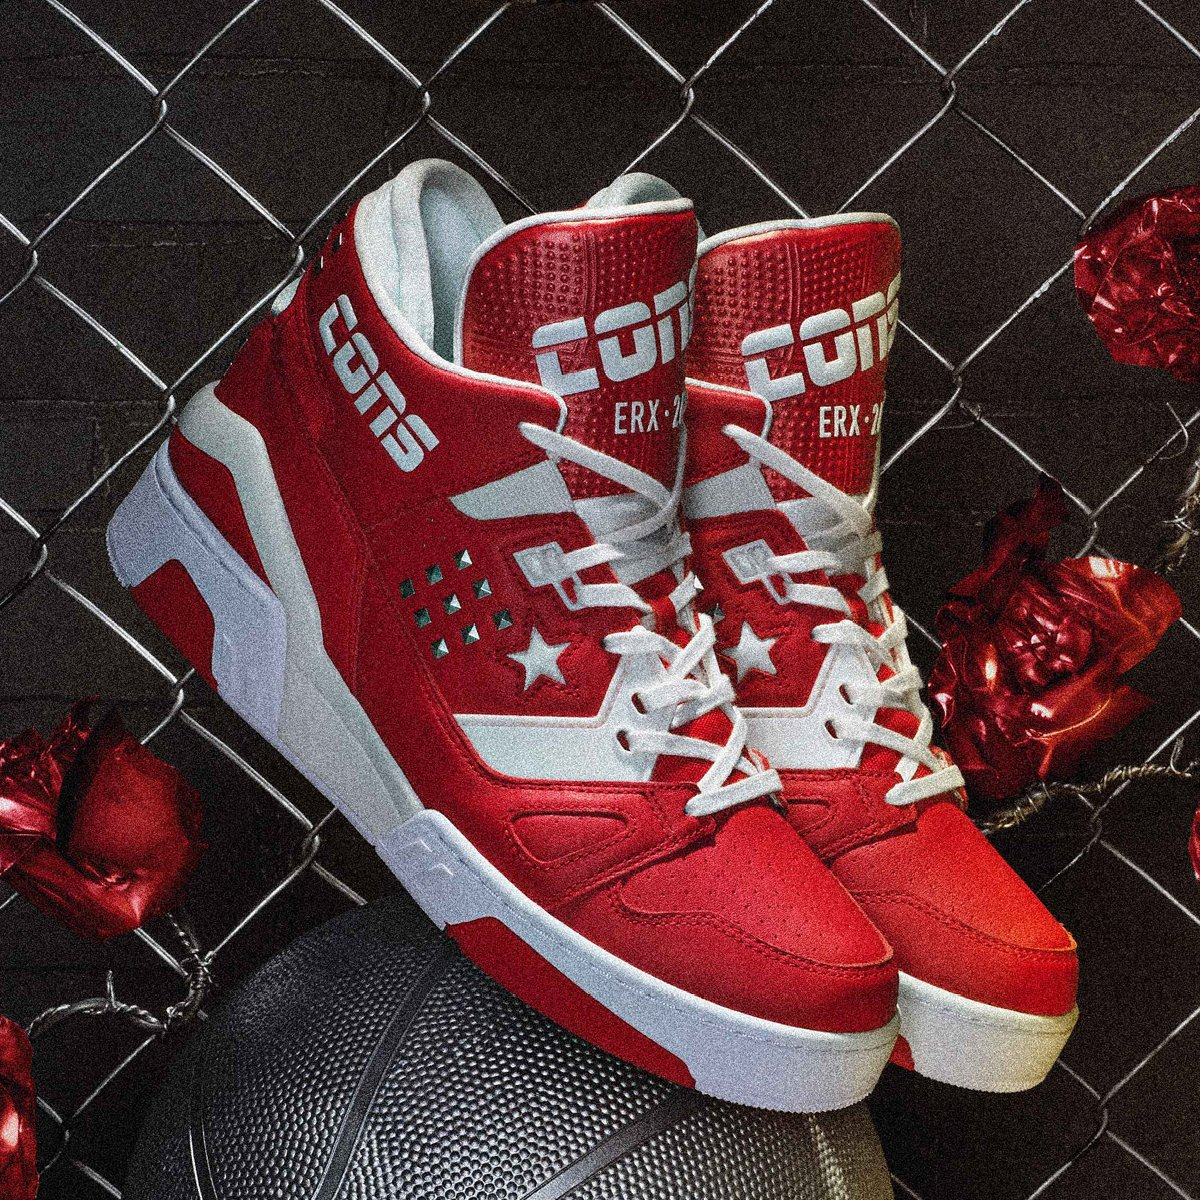 Enamel Red   Converse ERX 260 Metal Mid Now Available Online and In  Stores.   af9be8939